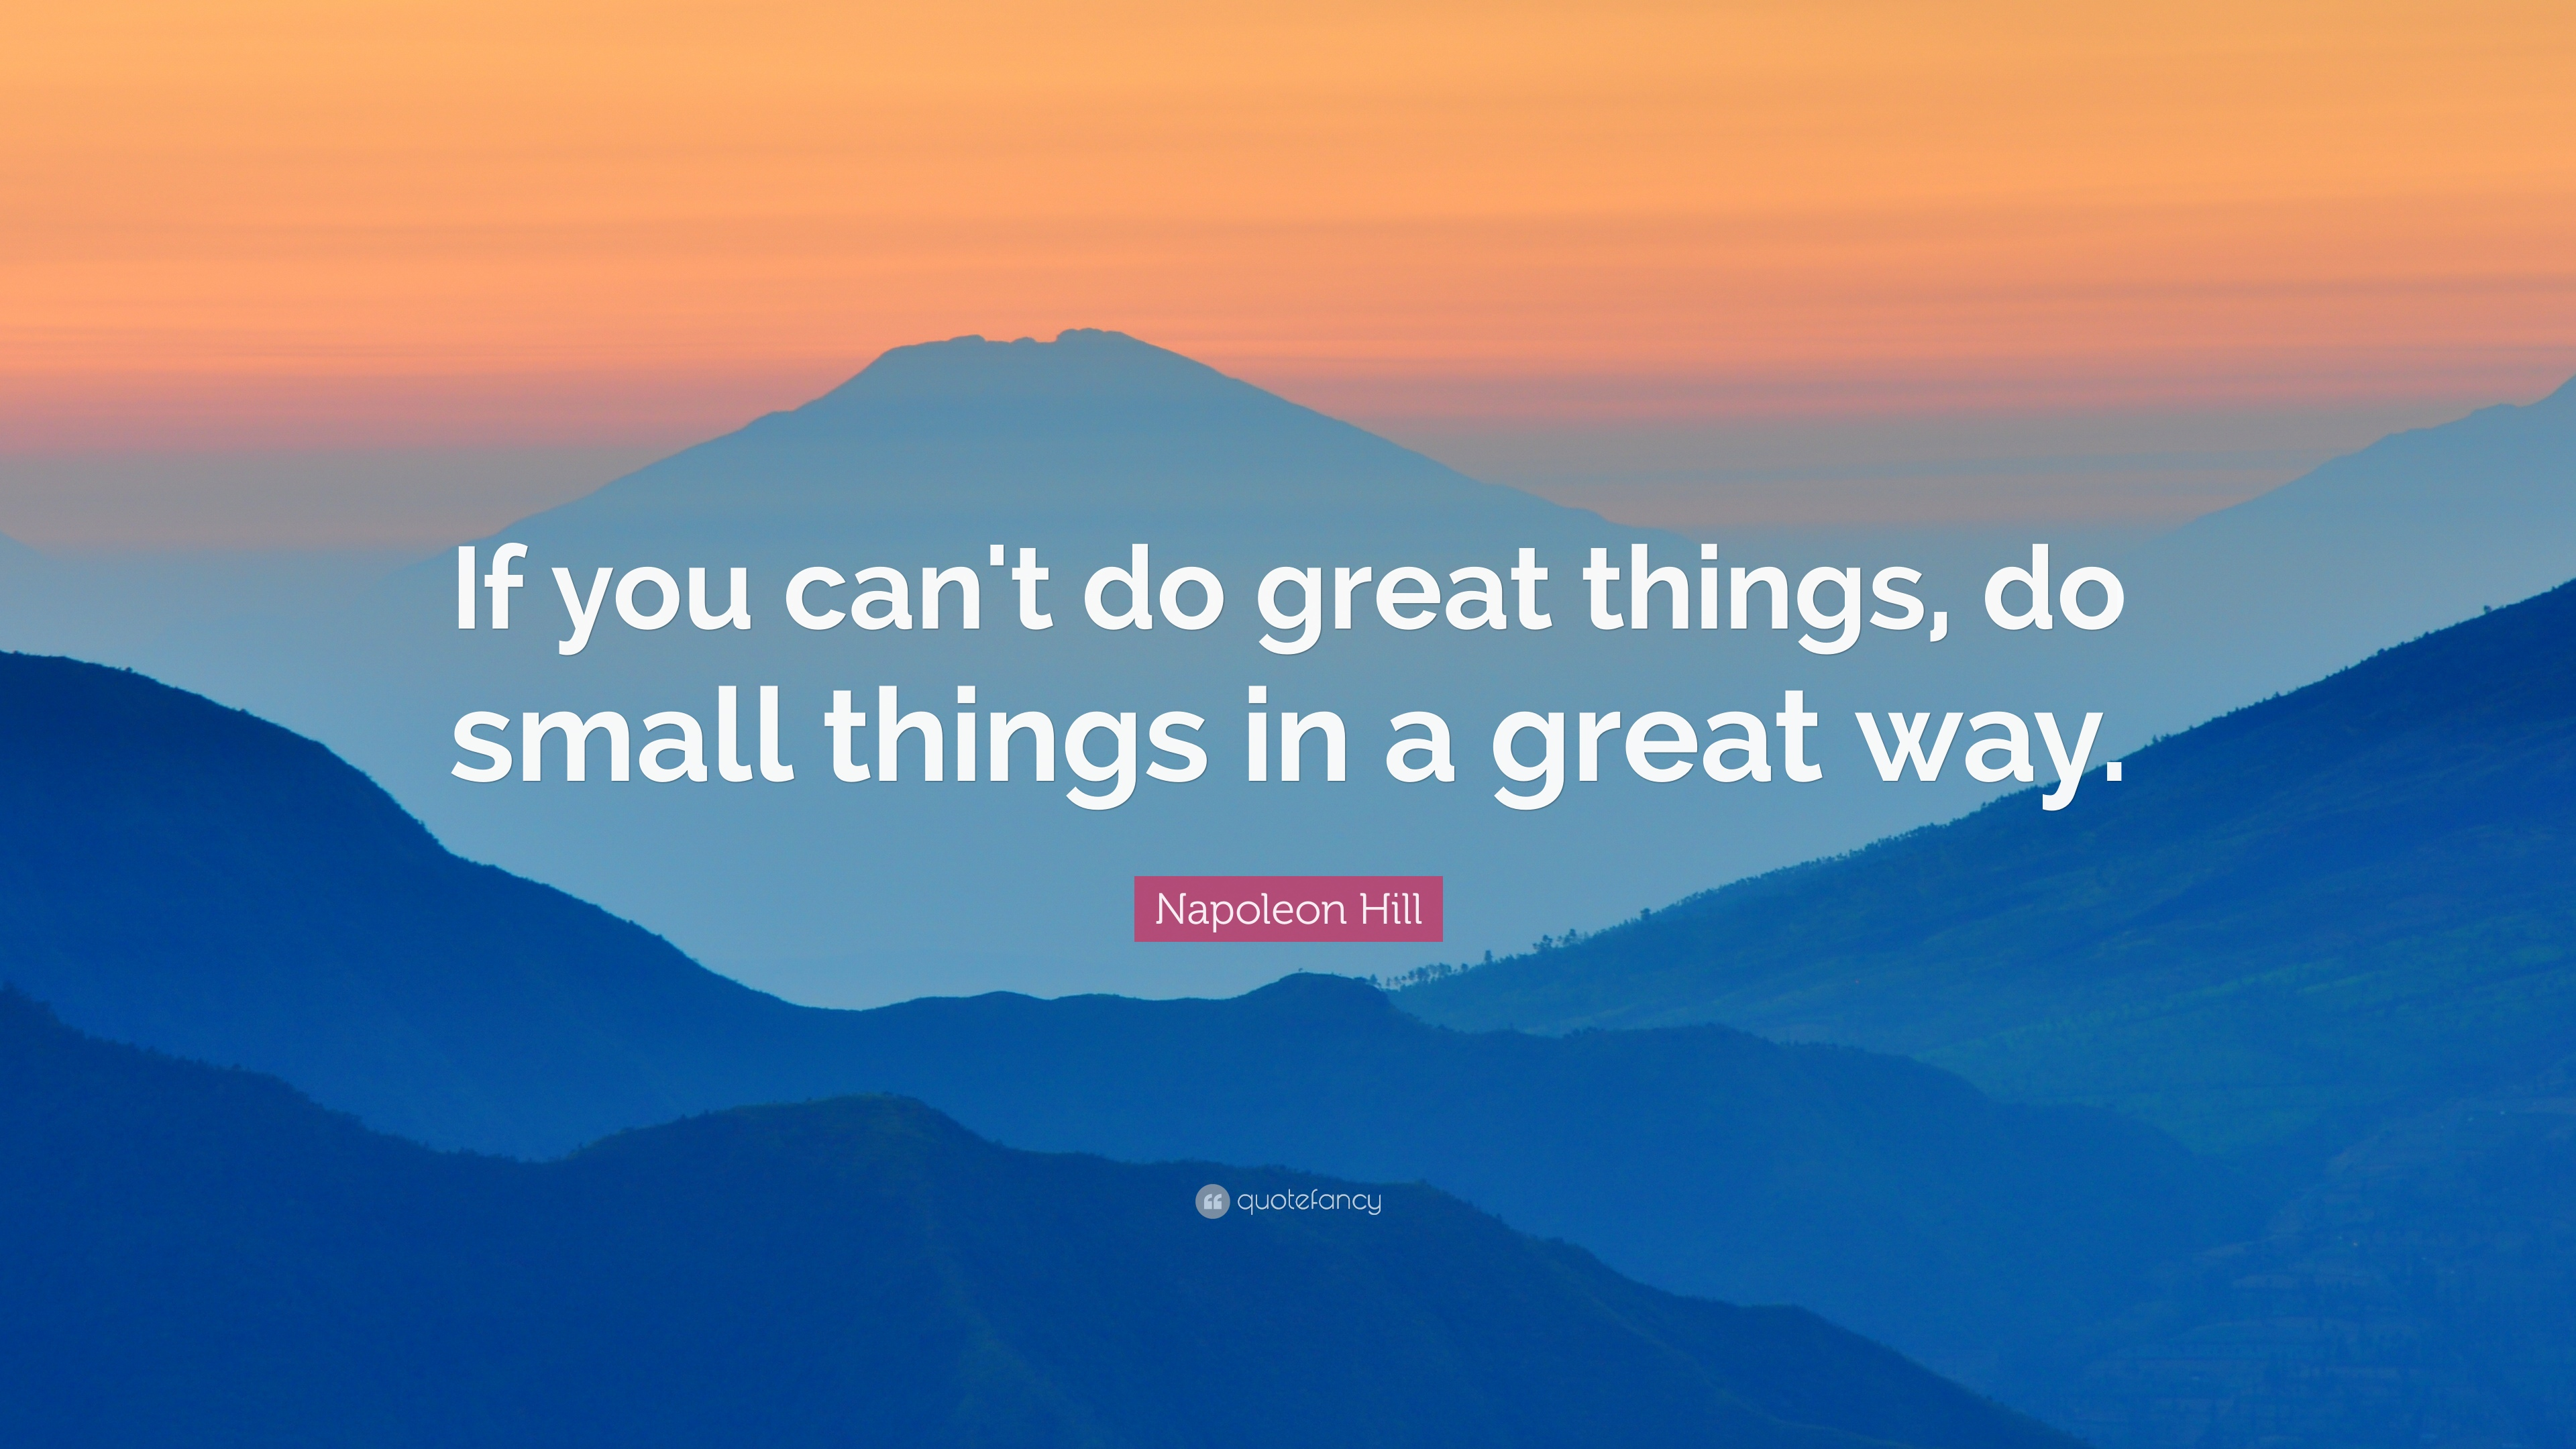 Elon Musk Quotes Wallpaper Napoleon Hill Quote If You Can T Do Great Things Do